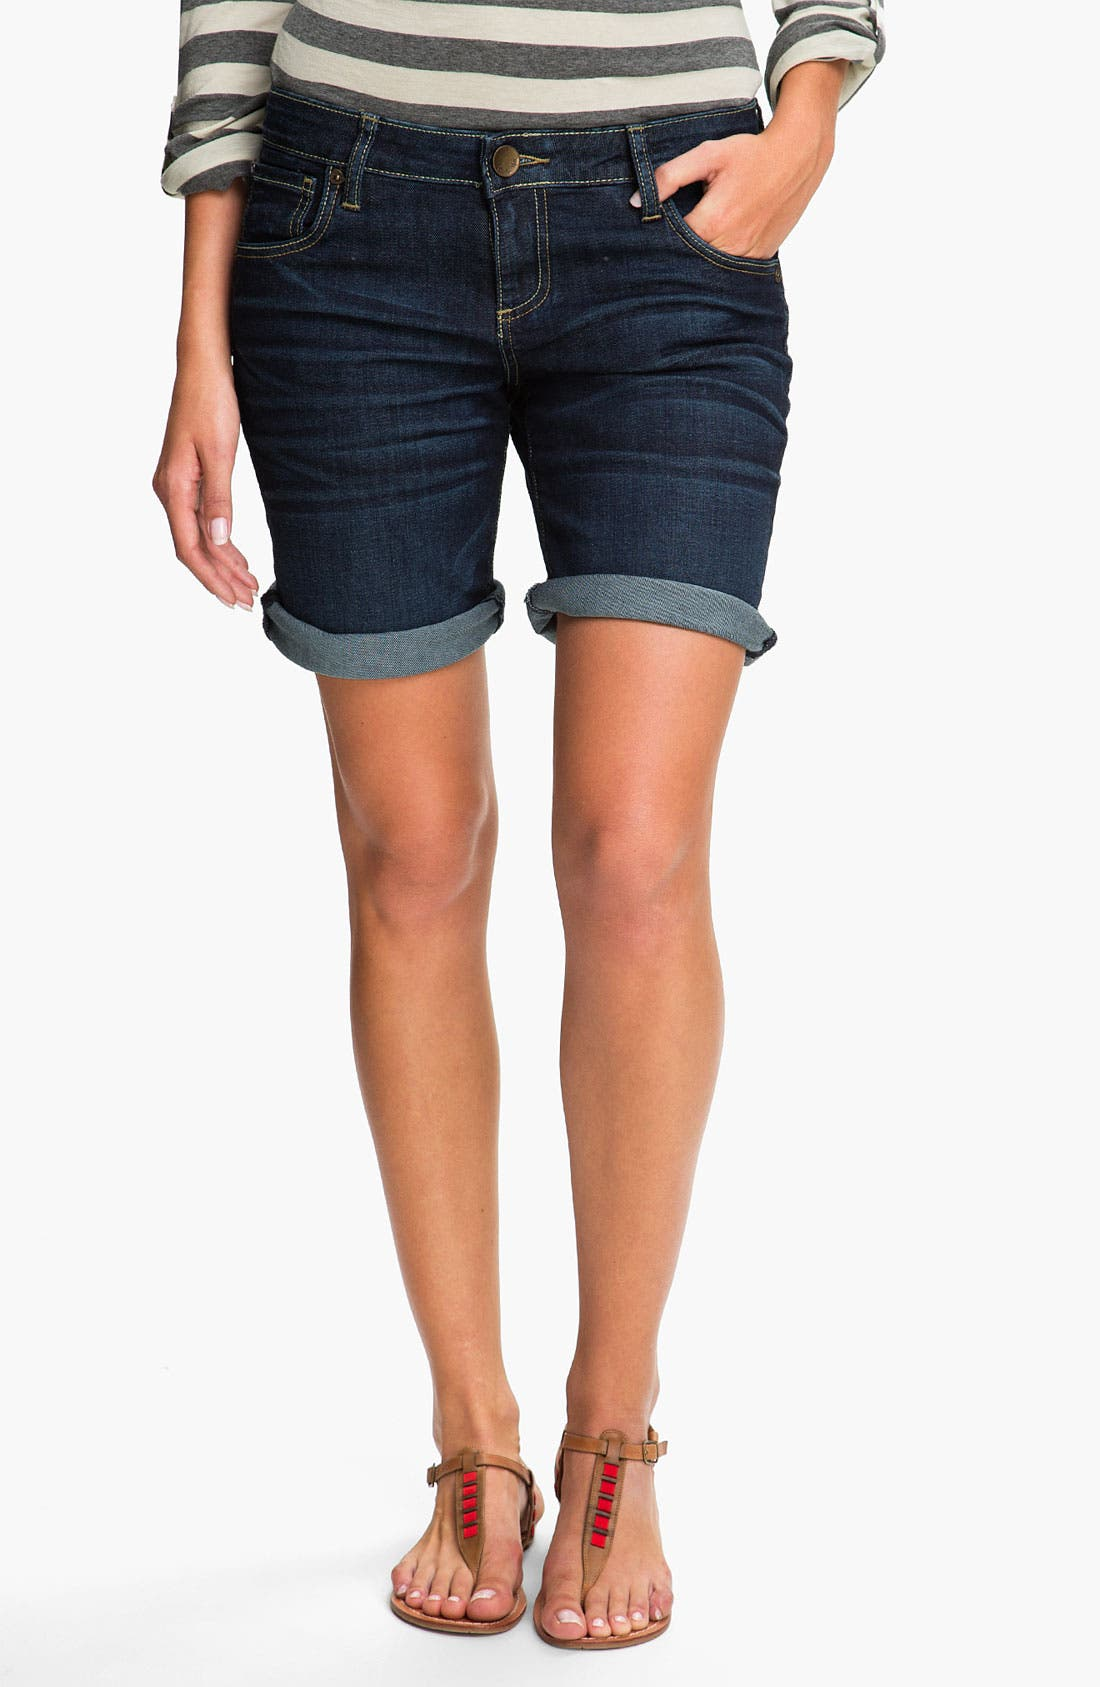 Alternate Image 1 Selected - KUT from the Kloth 'Catherine' Denim Boyfriend Shorts (Probable)